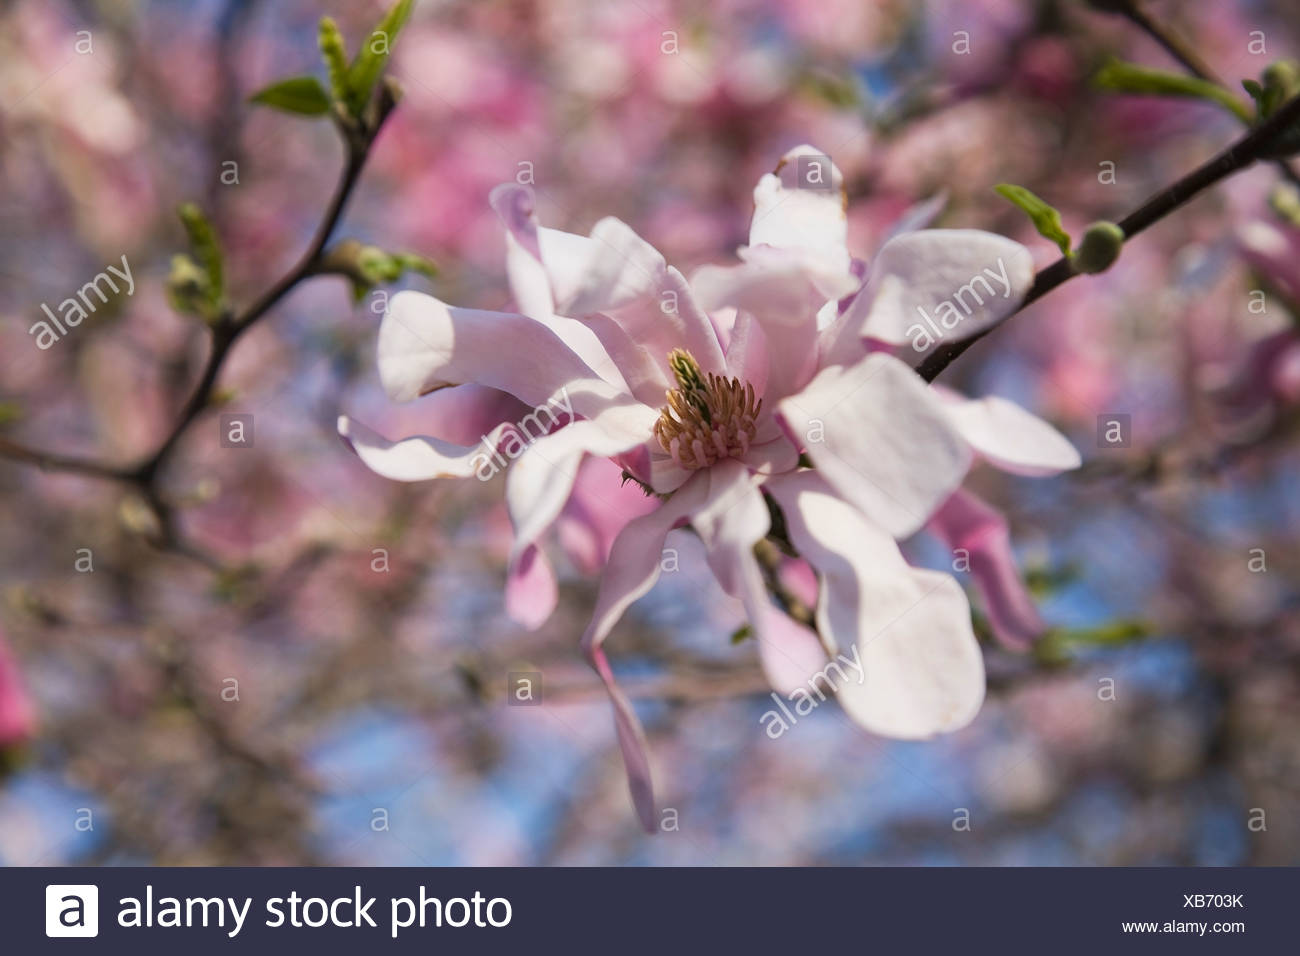 Montreal Quebec Canada A Magnolia Tree Blossoming Flowers At